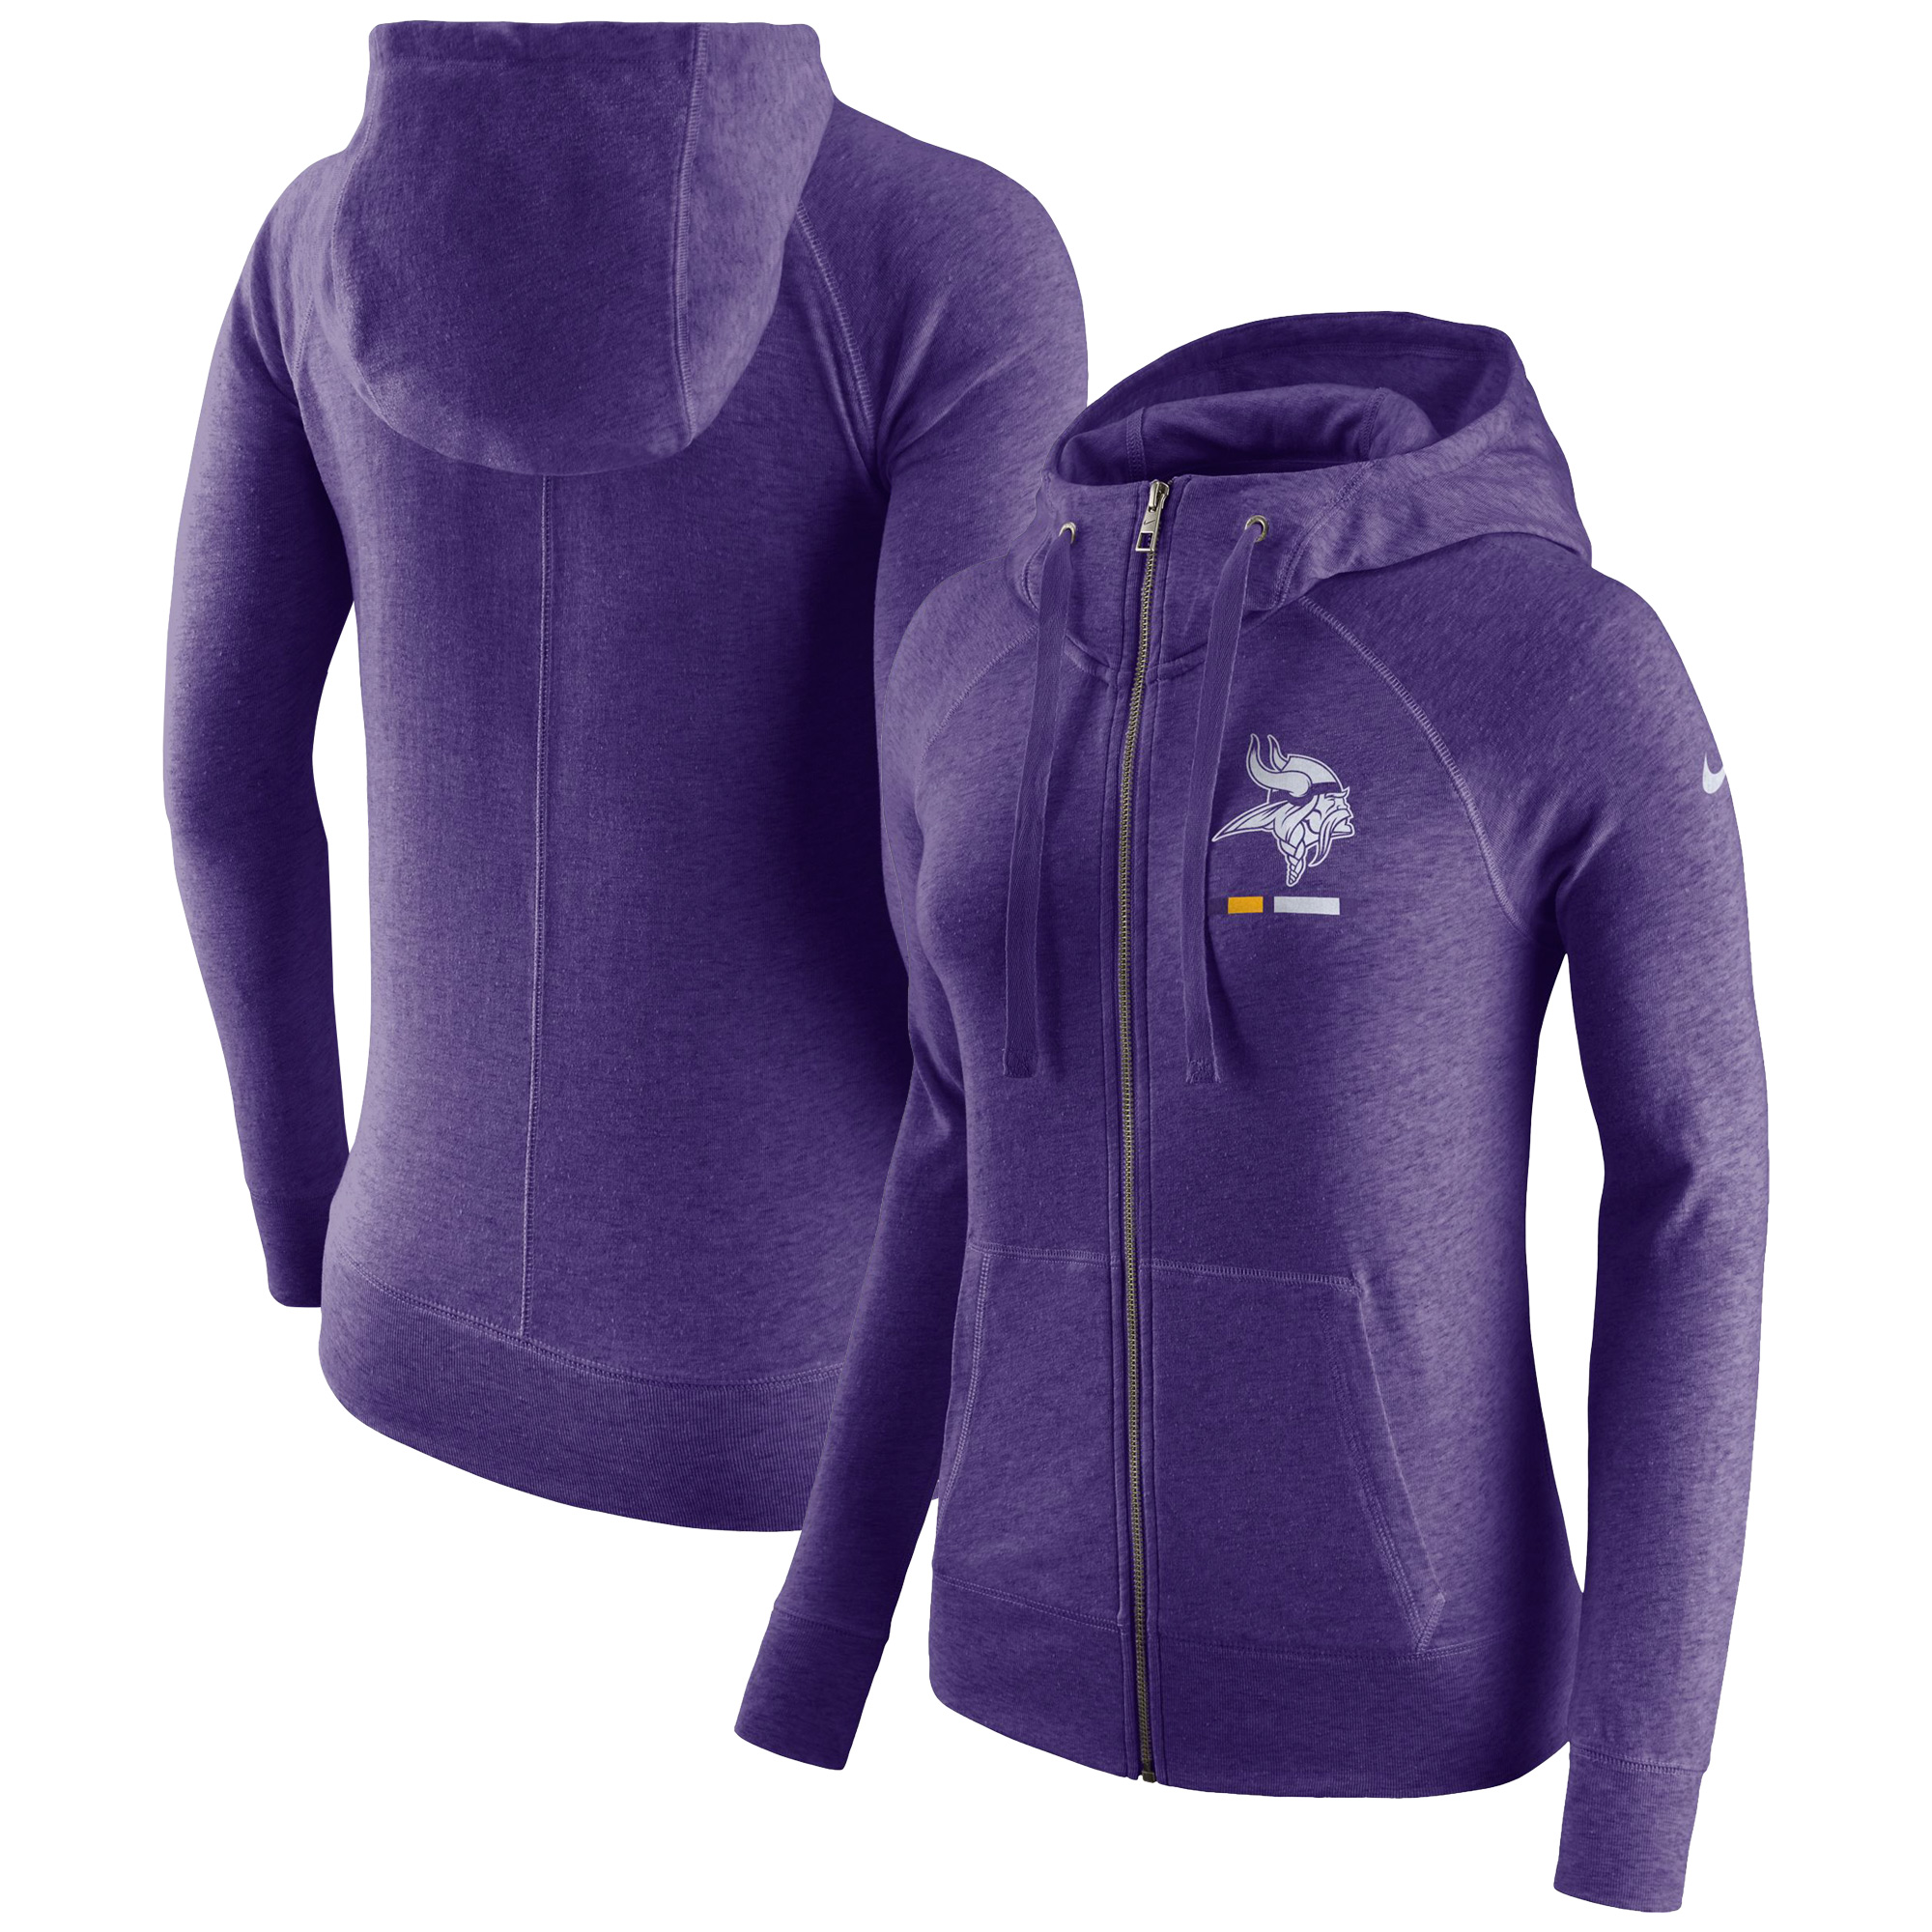 premium selection 9cb18 2fb91 Minnesota Vikings Nike Women's Gym Vintage Full-Zip Hoodie - Purple